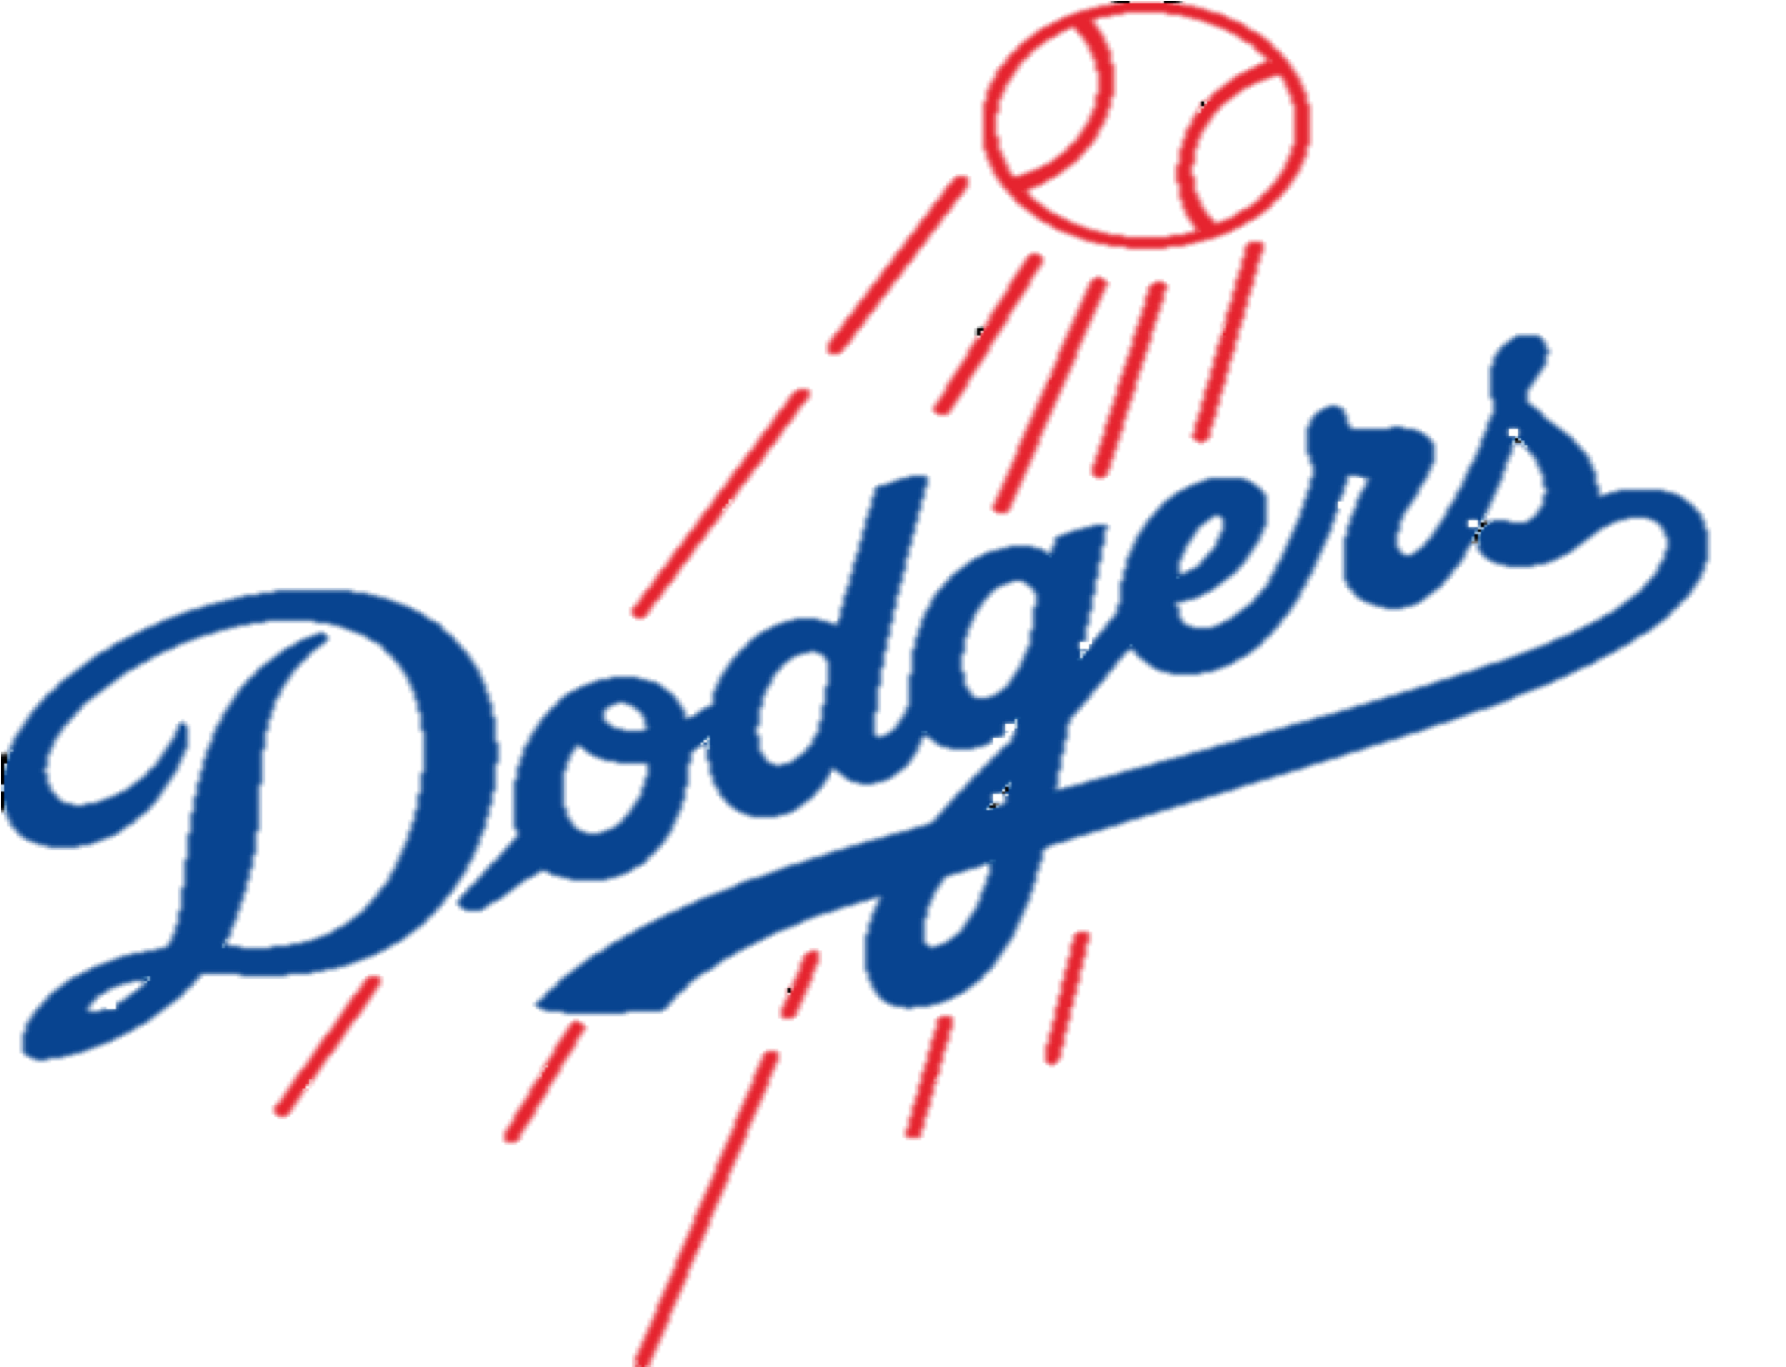 dodger logos wallpapers search terms dodgers la dodgers logo los rh pinterest co uk dodgers logo vector art brooklyn dodgers logo vector